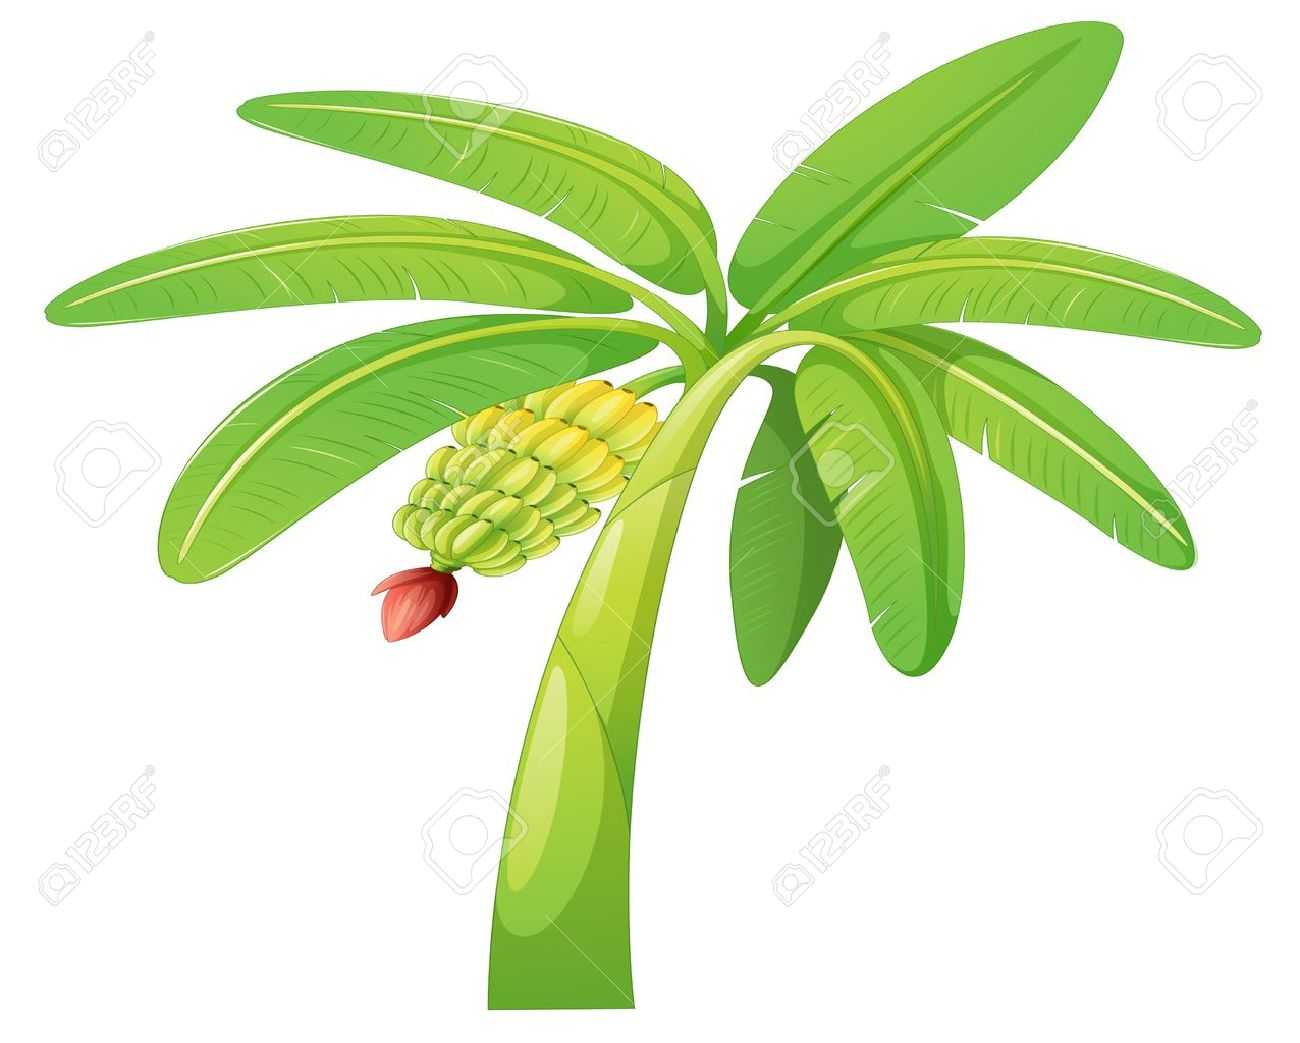 Illustration Of Banana Tree On A White Background Royalty Free